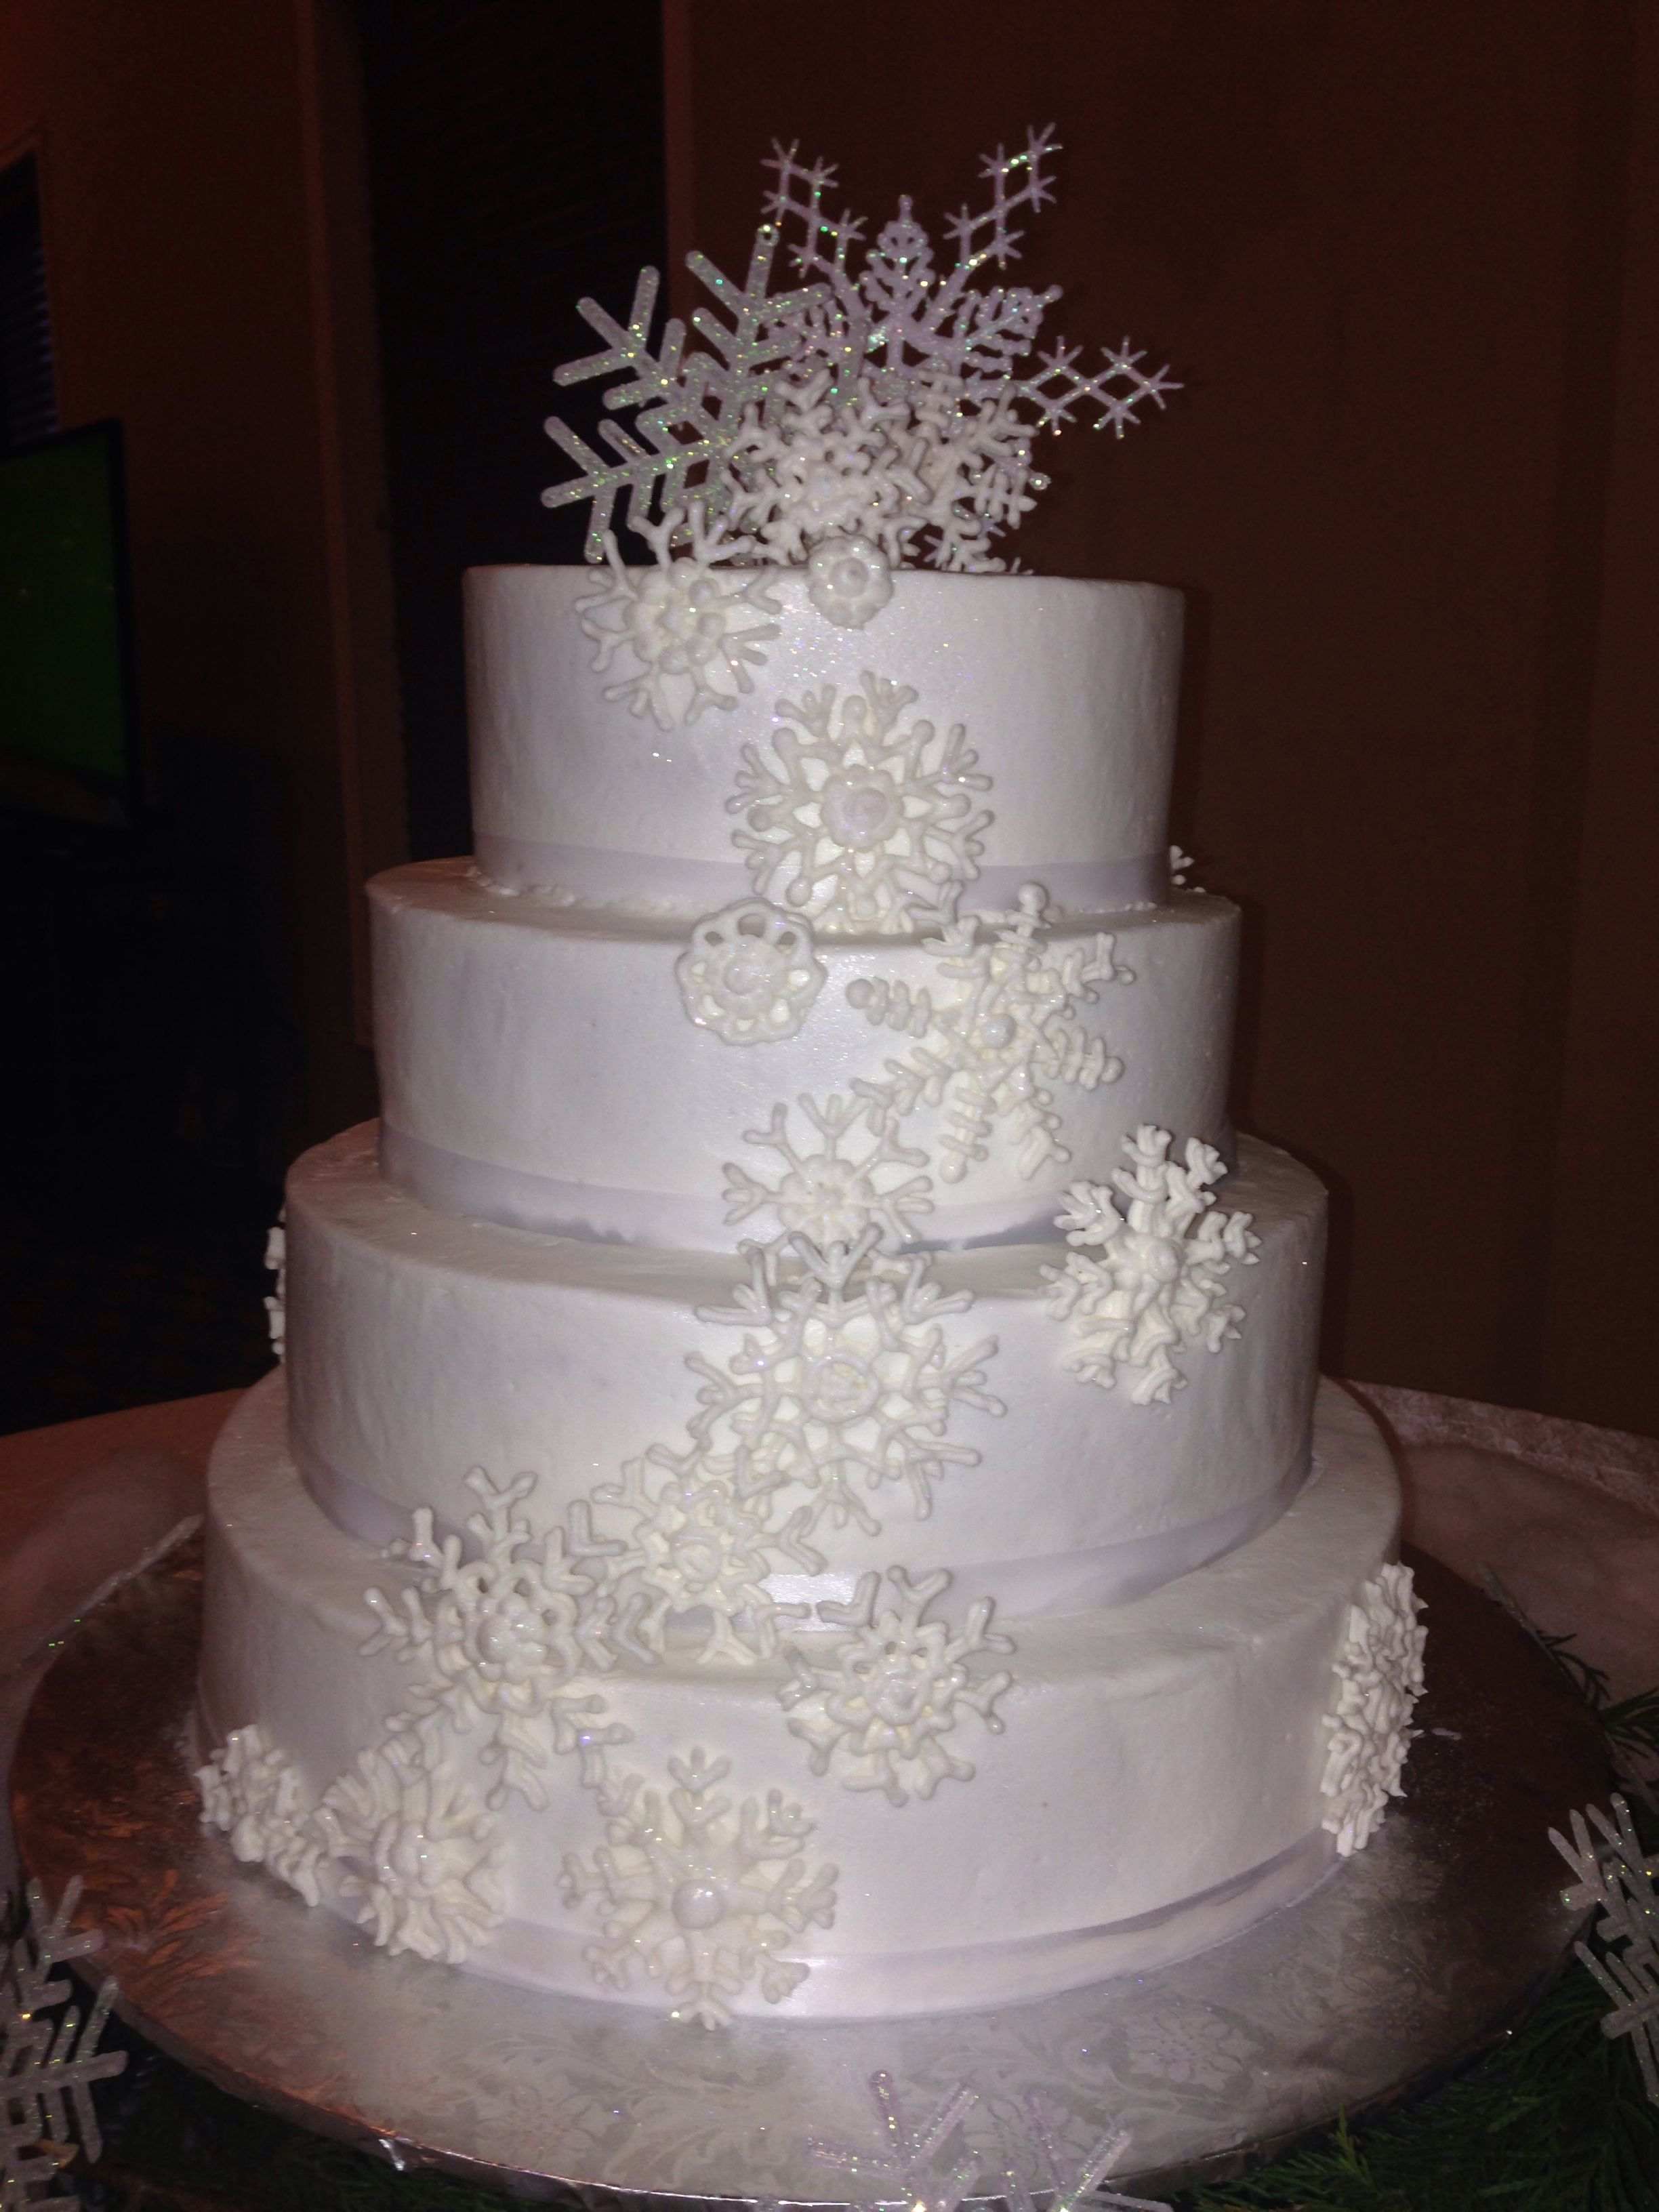 winter themed wedding cakes winter themed wedding cake i made mallory gray 50 cakes 27548